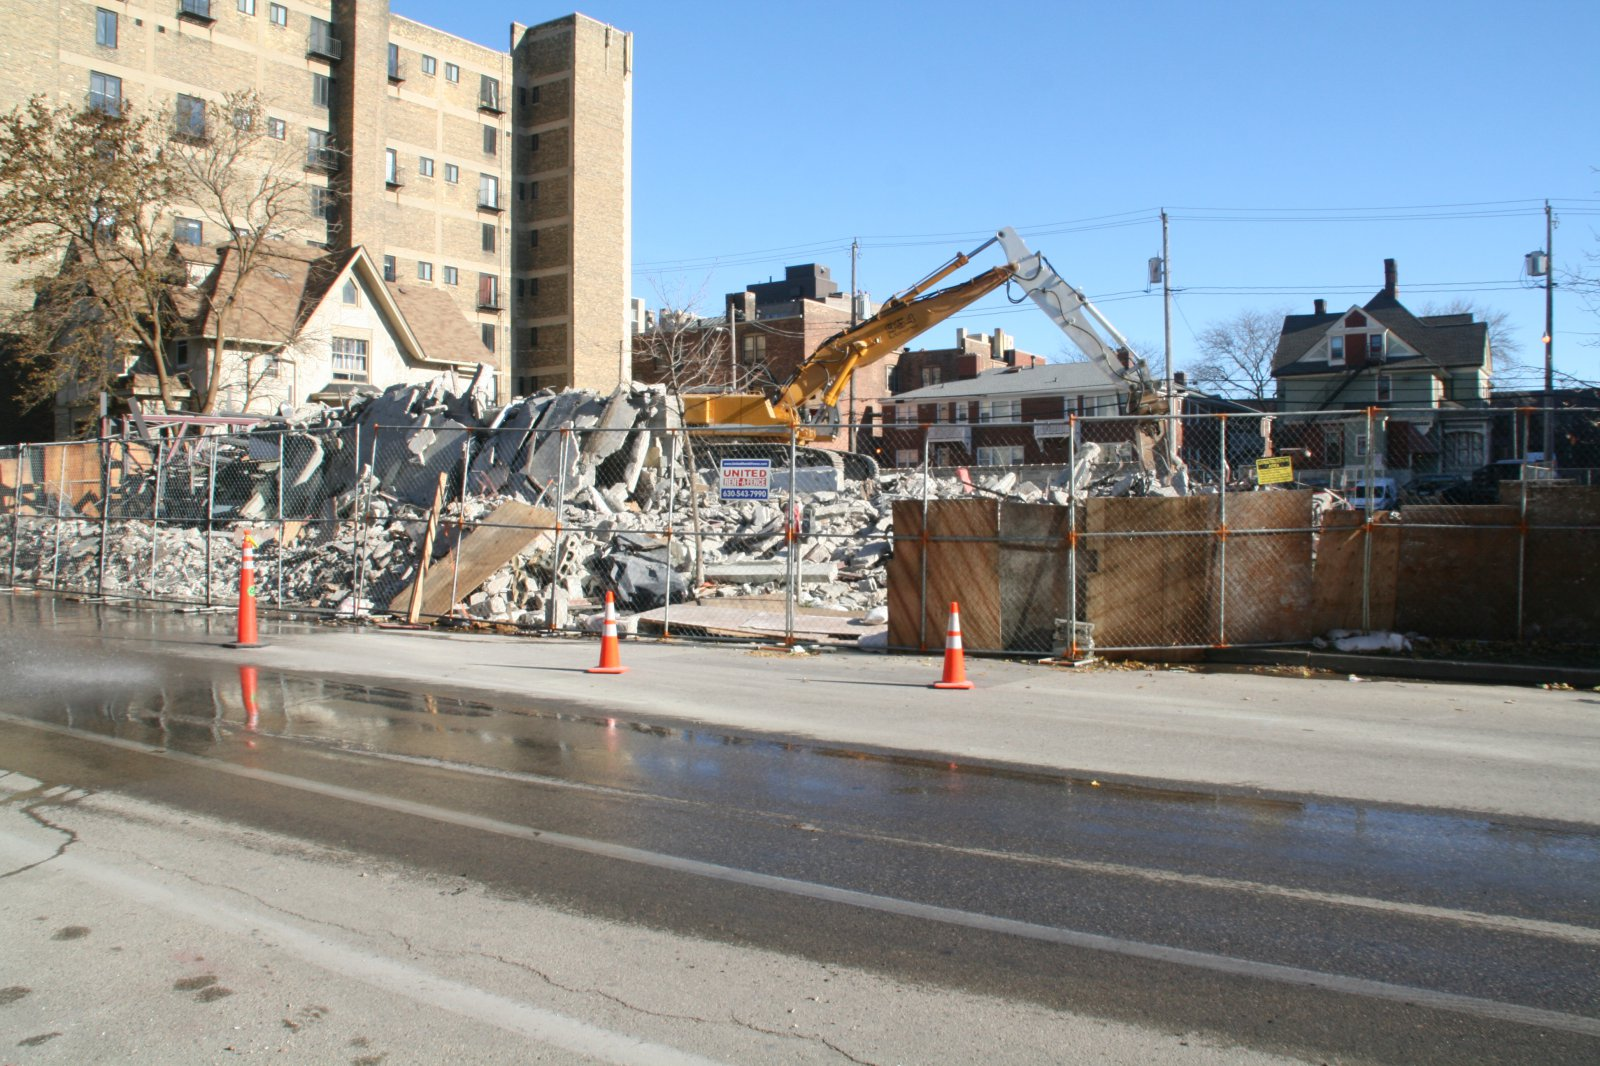 1840 N. Farwell Ave. Collapse